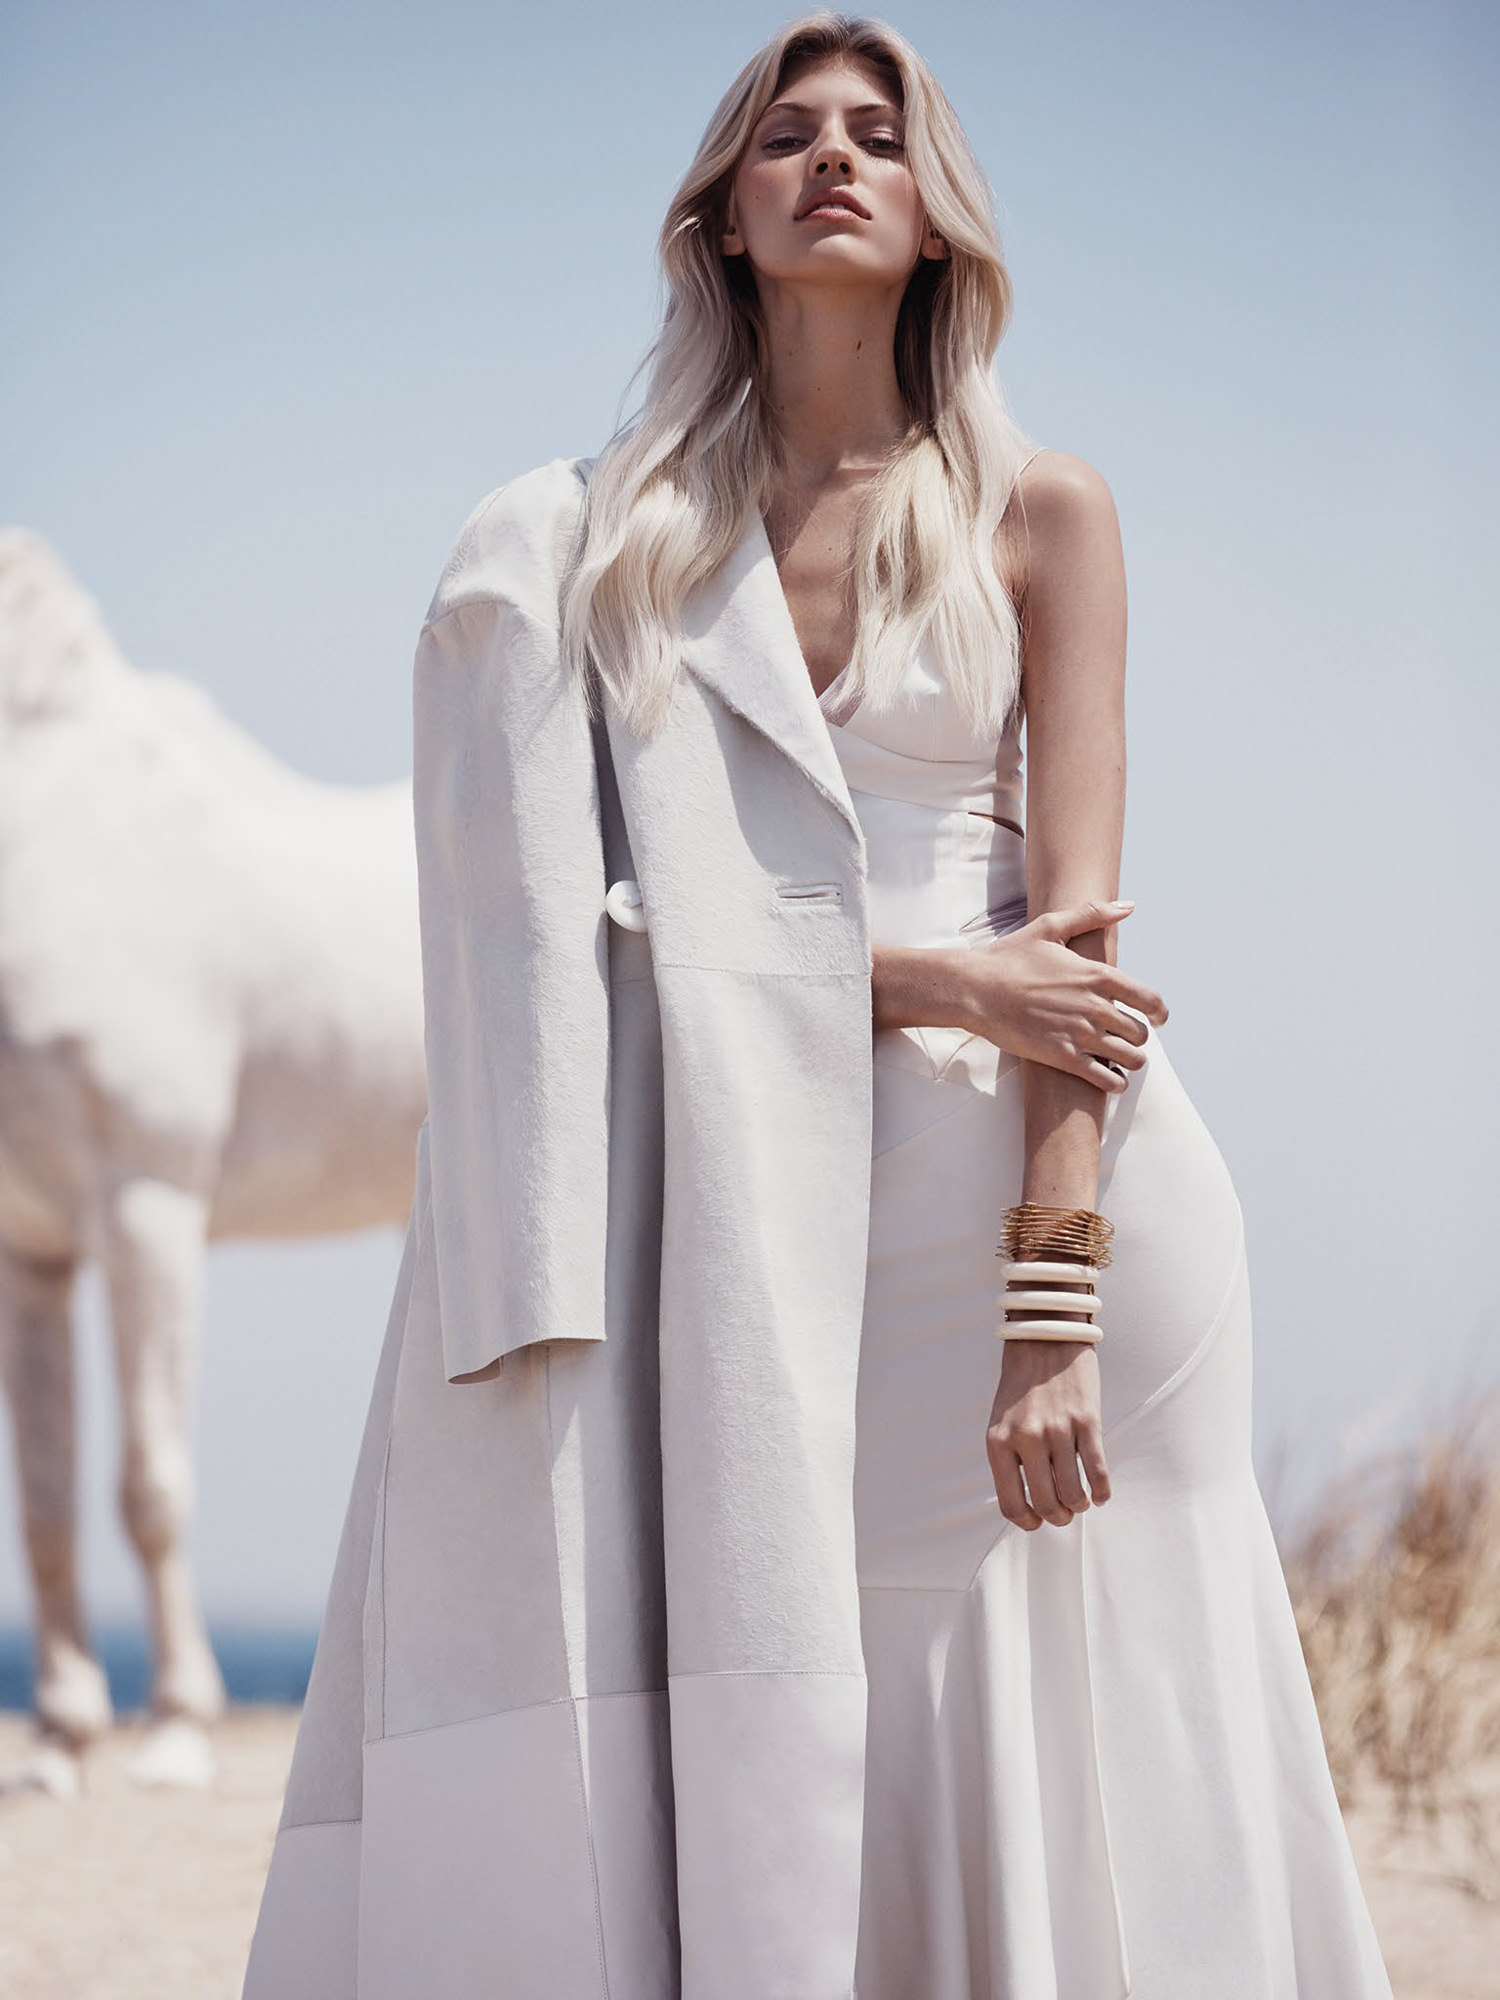 www.lacavalieremasquee.com | Dean Isidro for Vogue México November 2015 w/ Devon Windsor